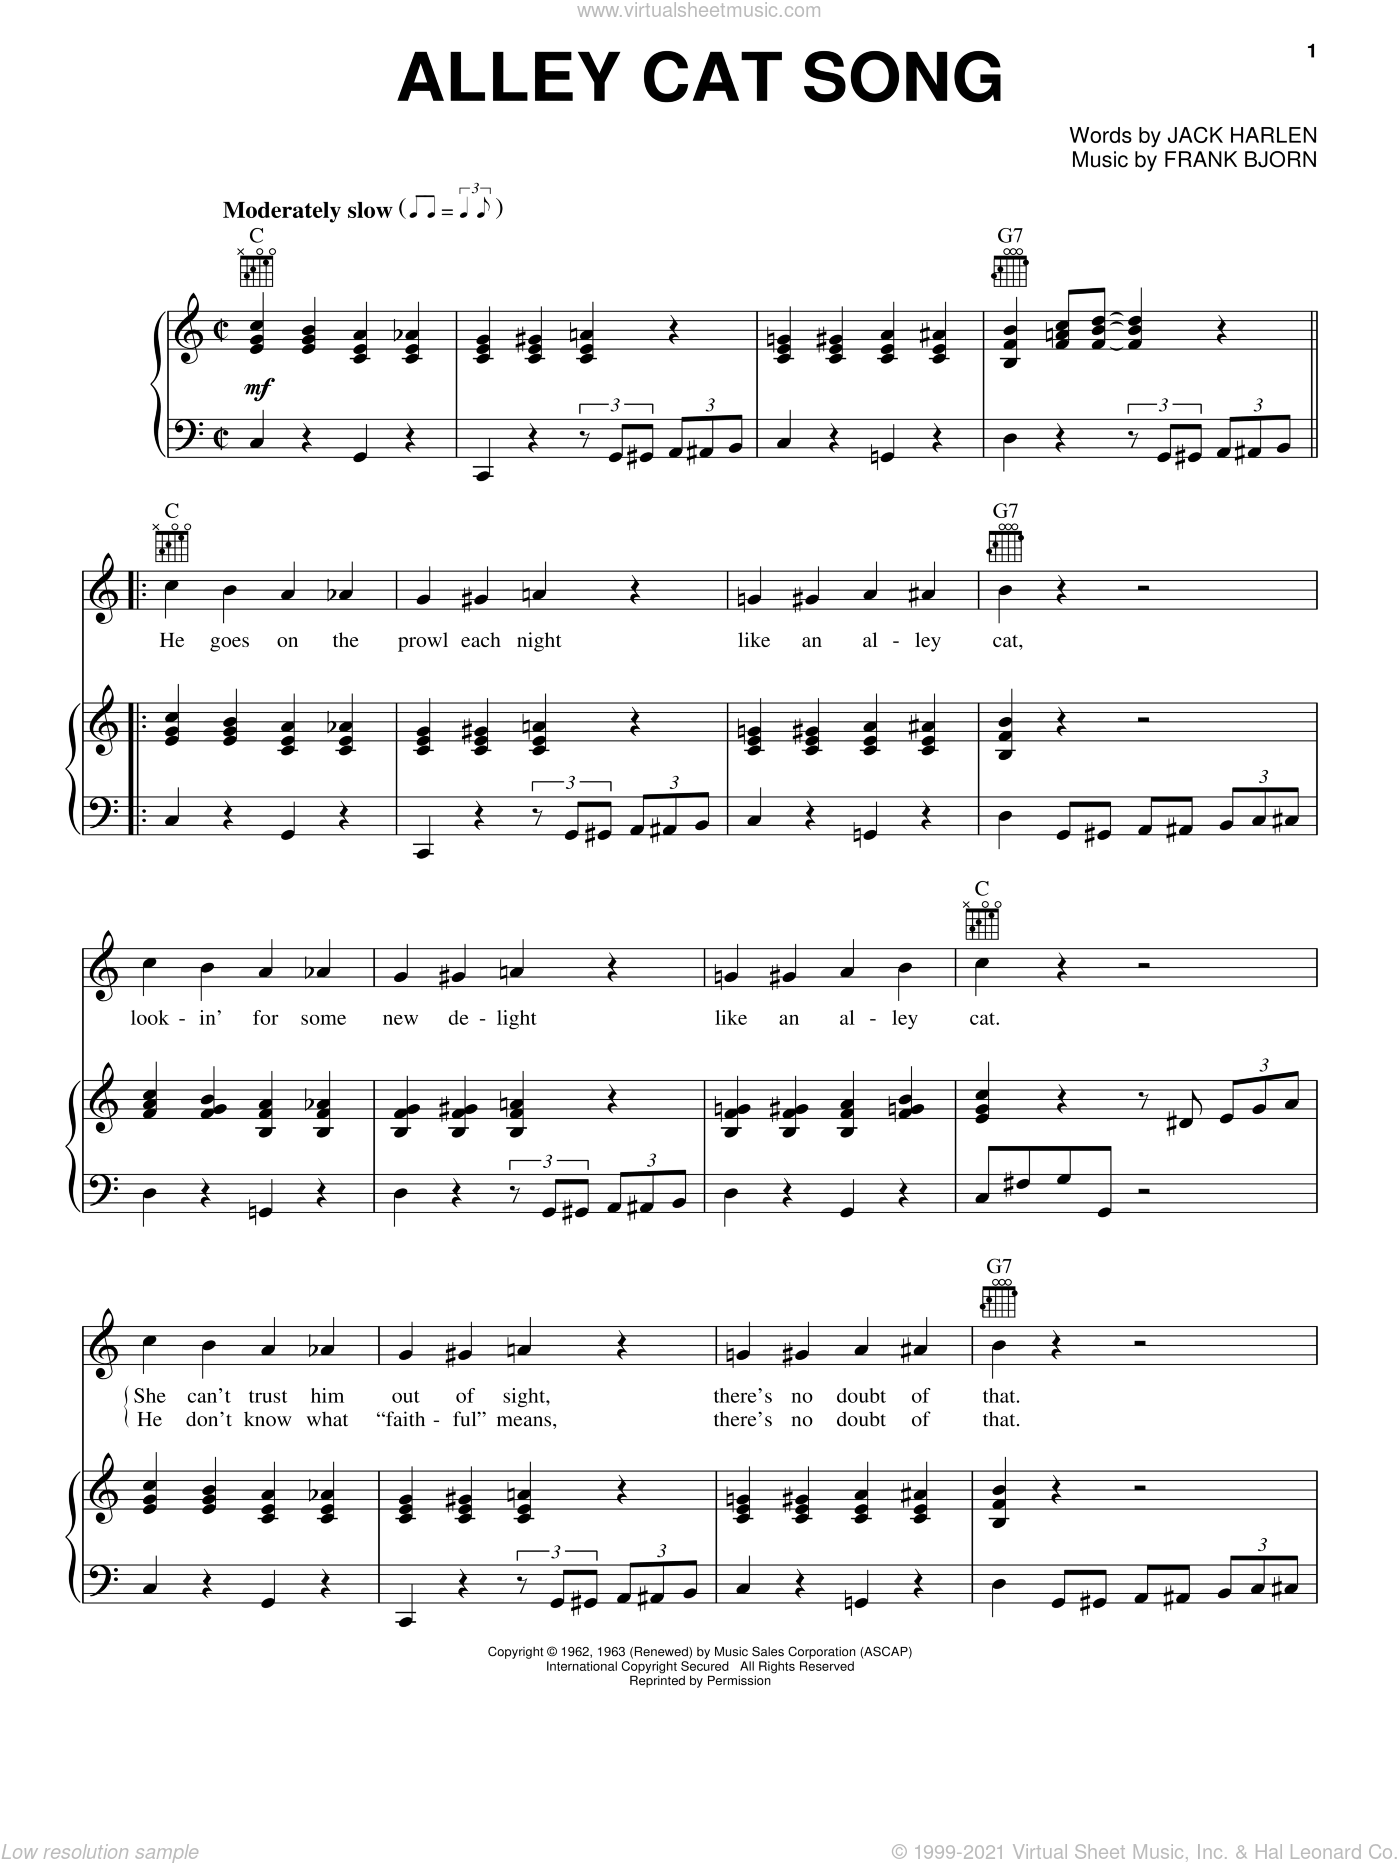 Alley Cat Song sheet music for voice, piano or guitar by Jack Harlen, Peggy Lee and Frank Bjorn